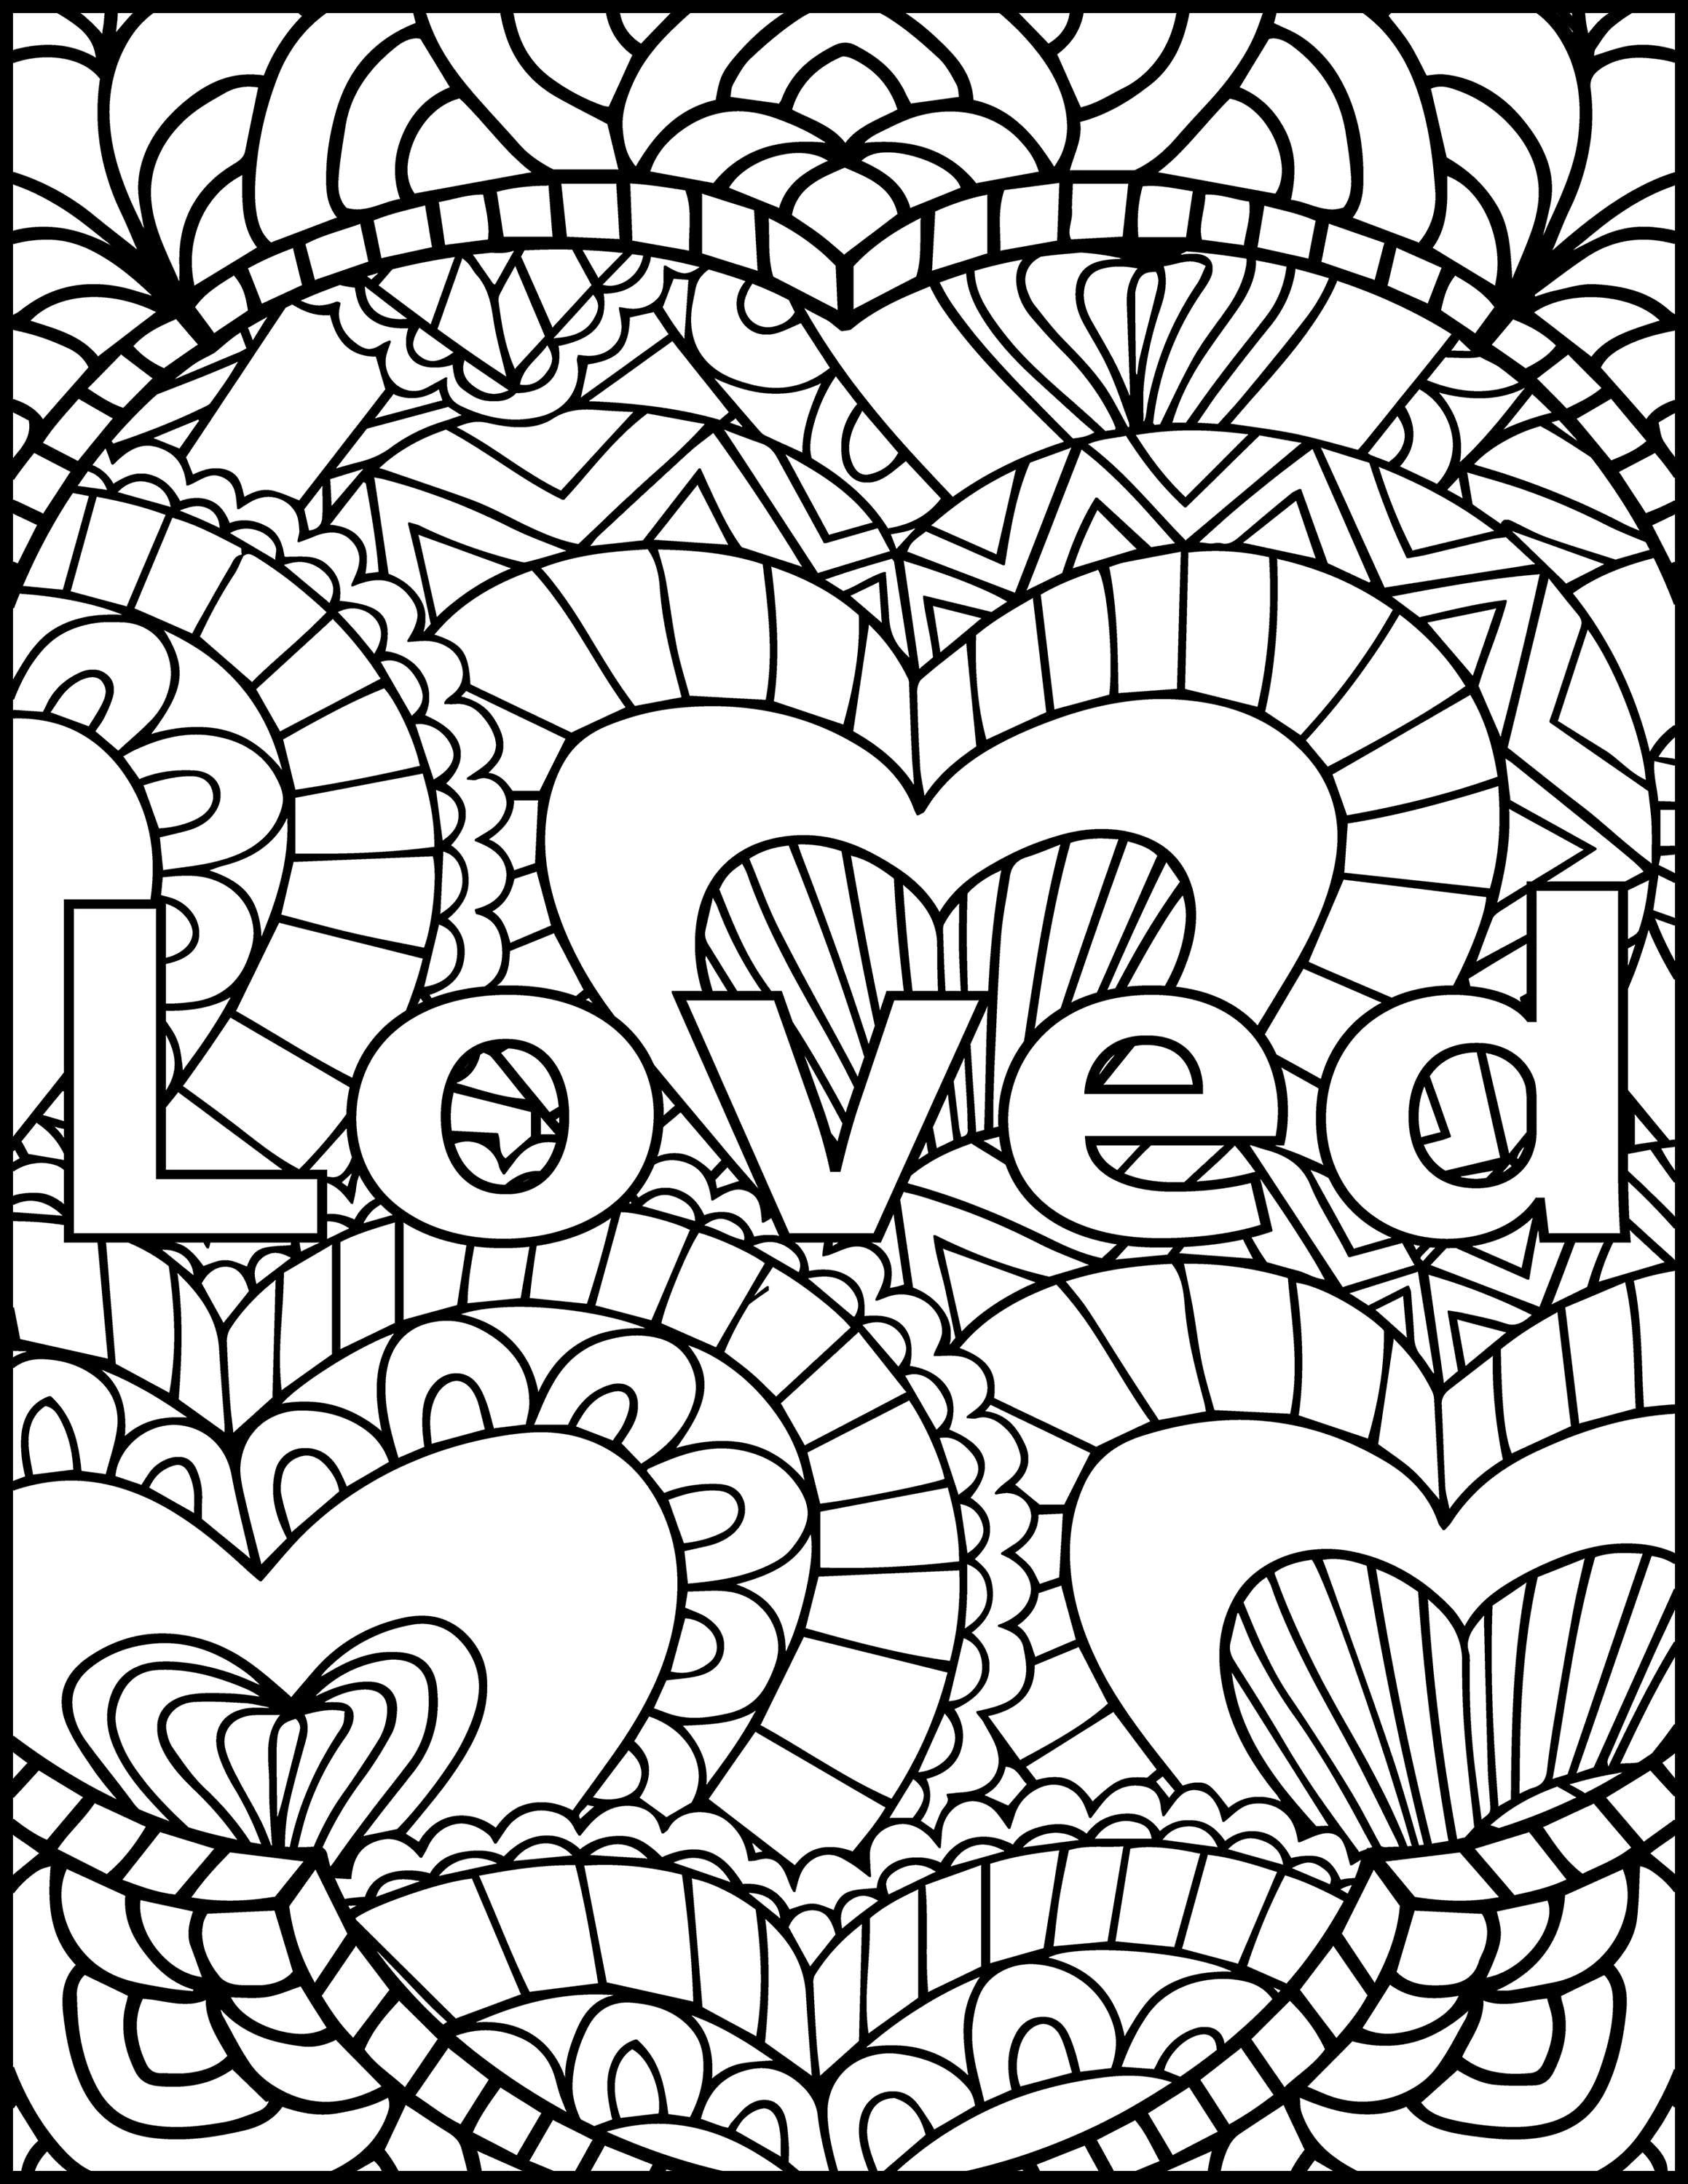 I Am Loved Adult Coloring Page Inspiring Message Coloring